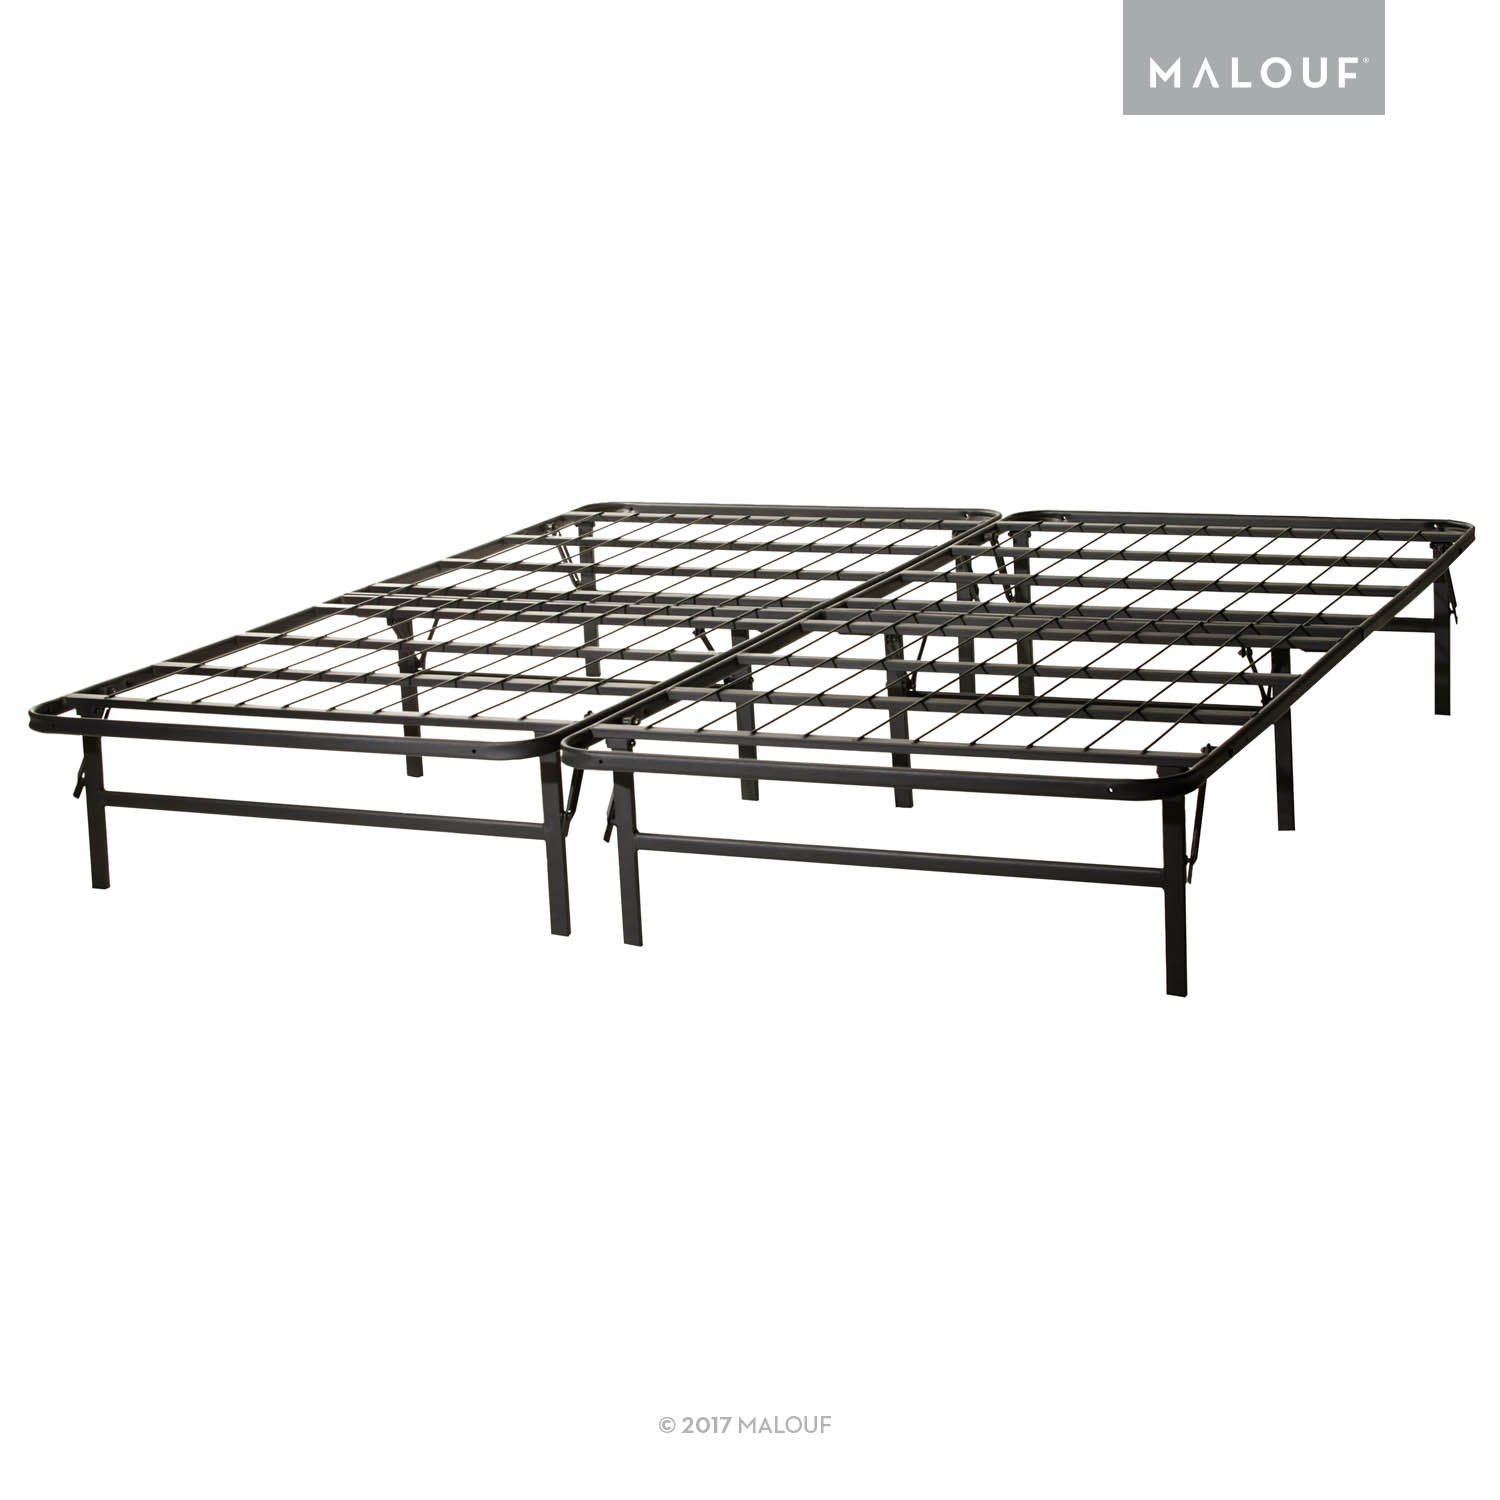 STRUCTURES by Malouf HIGHRISE Folding Metal Bed Frame 14 Inch High Bi-Fold Platform Bed Base and Box Spring